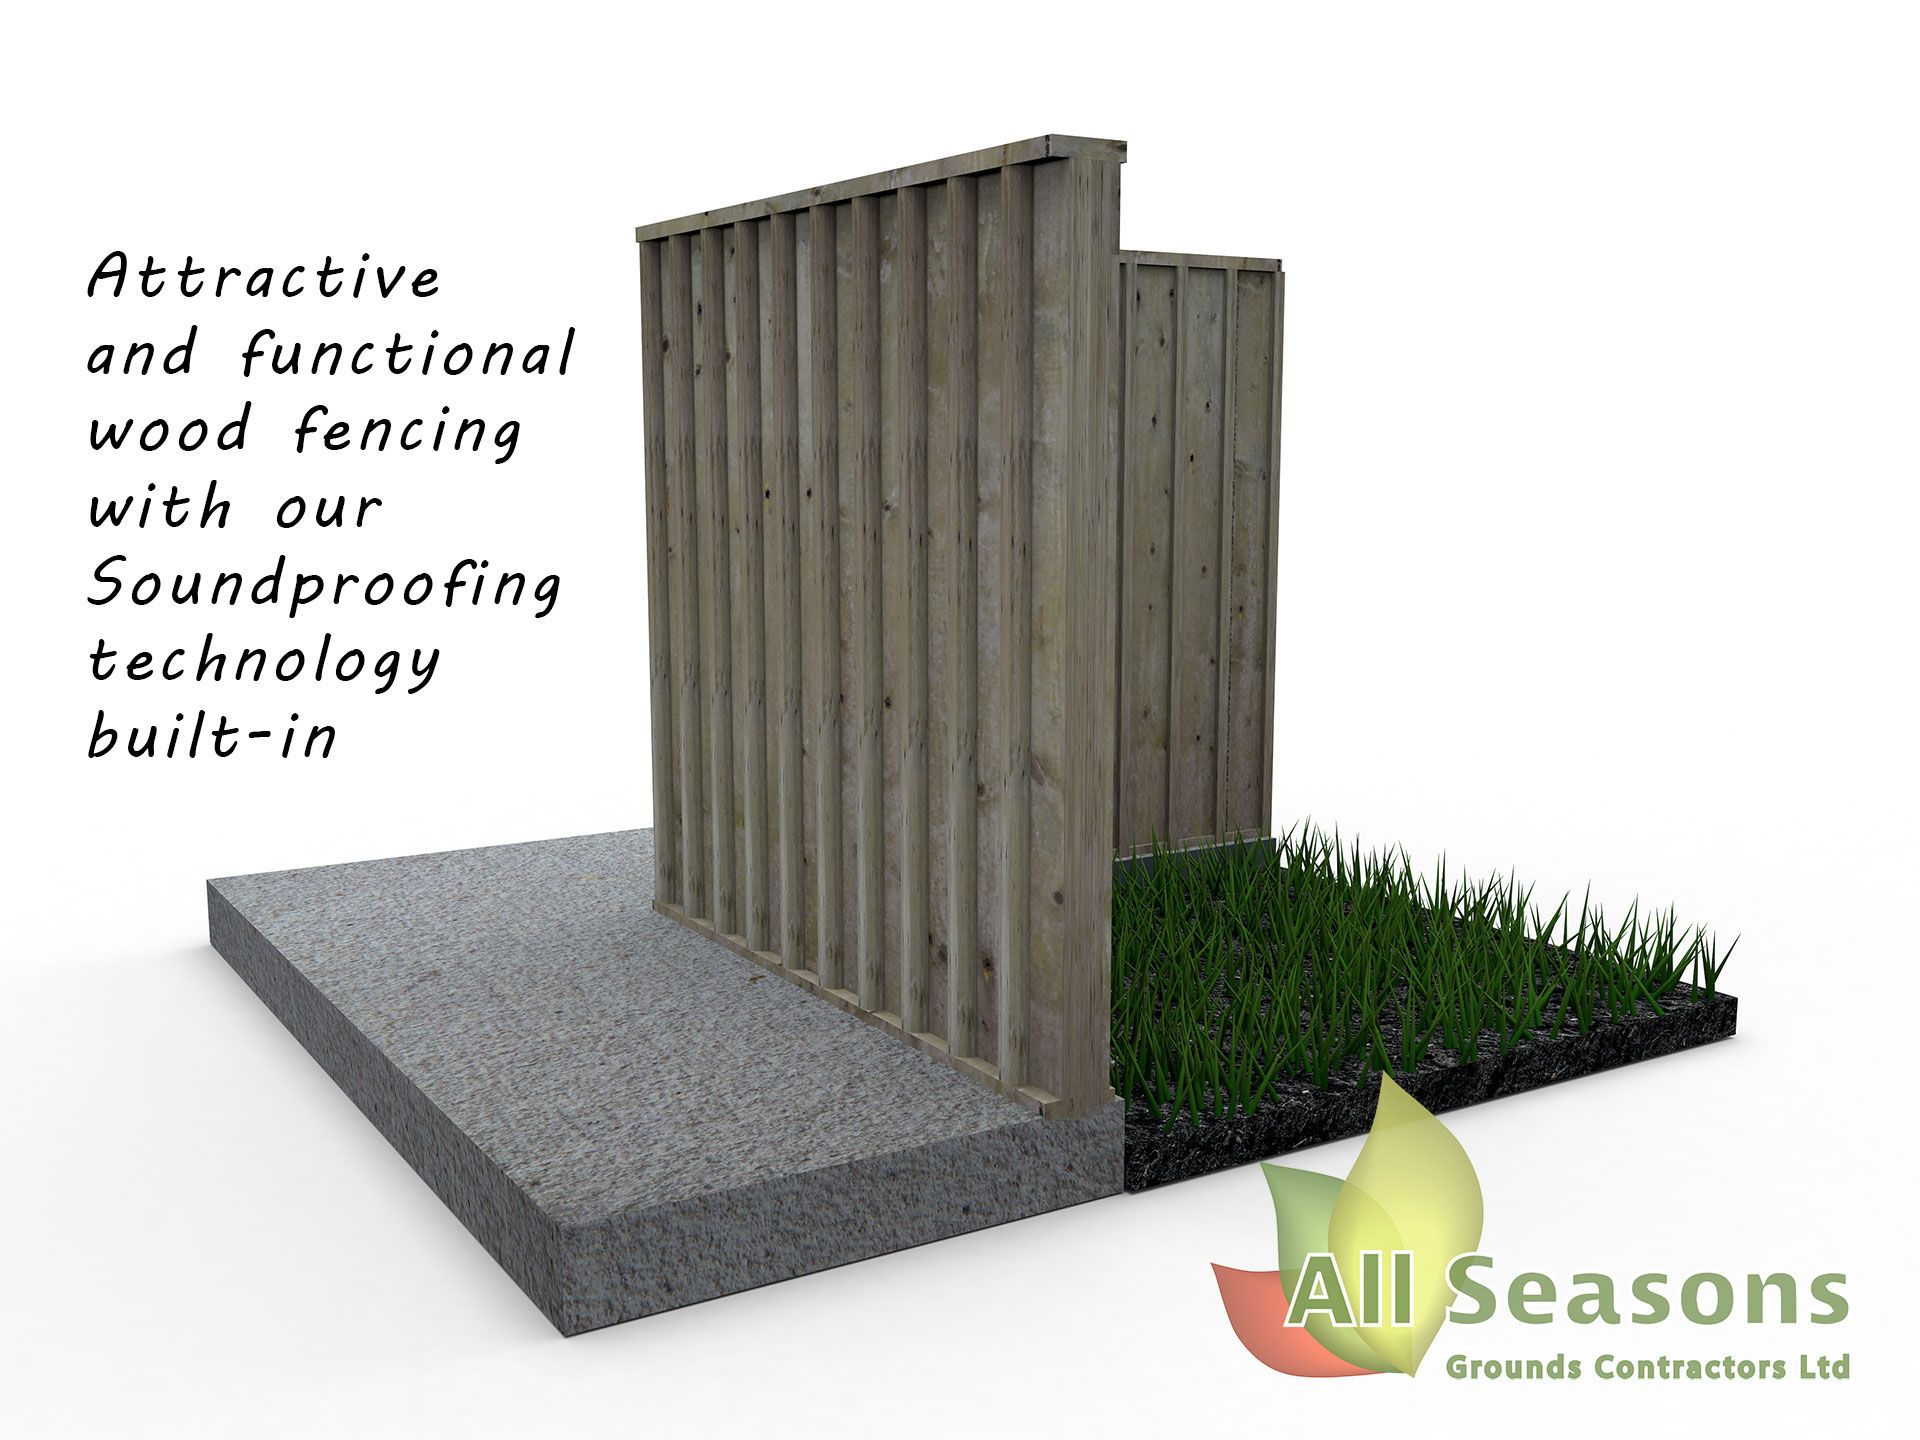 All Seasons Sound Proof Fencing